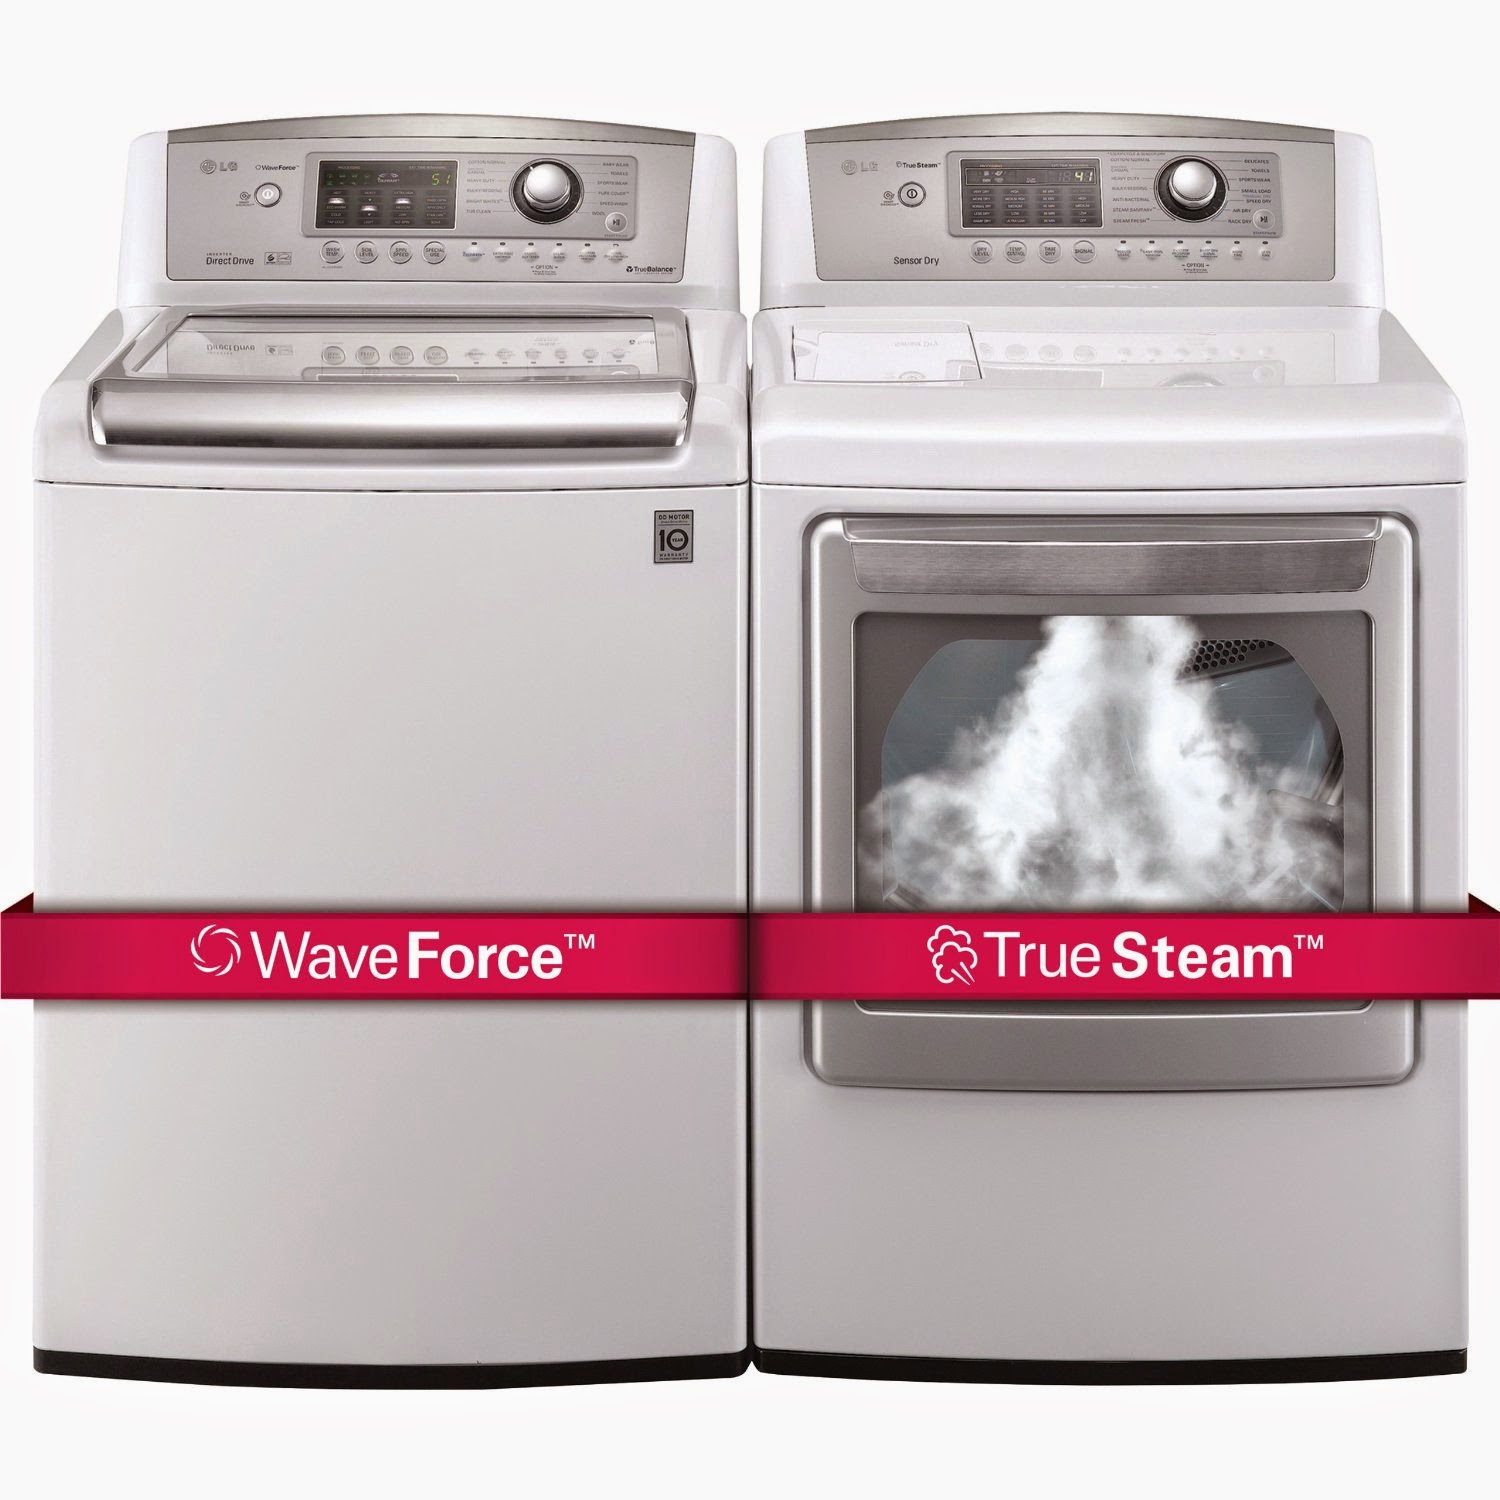 The best top load washer on the market - Lg Ultra Larg Top Load Laundry Pair With Waveforce Technology